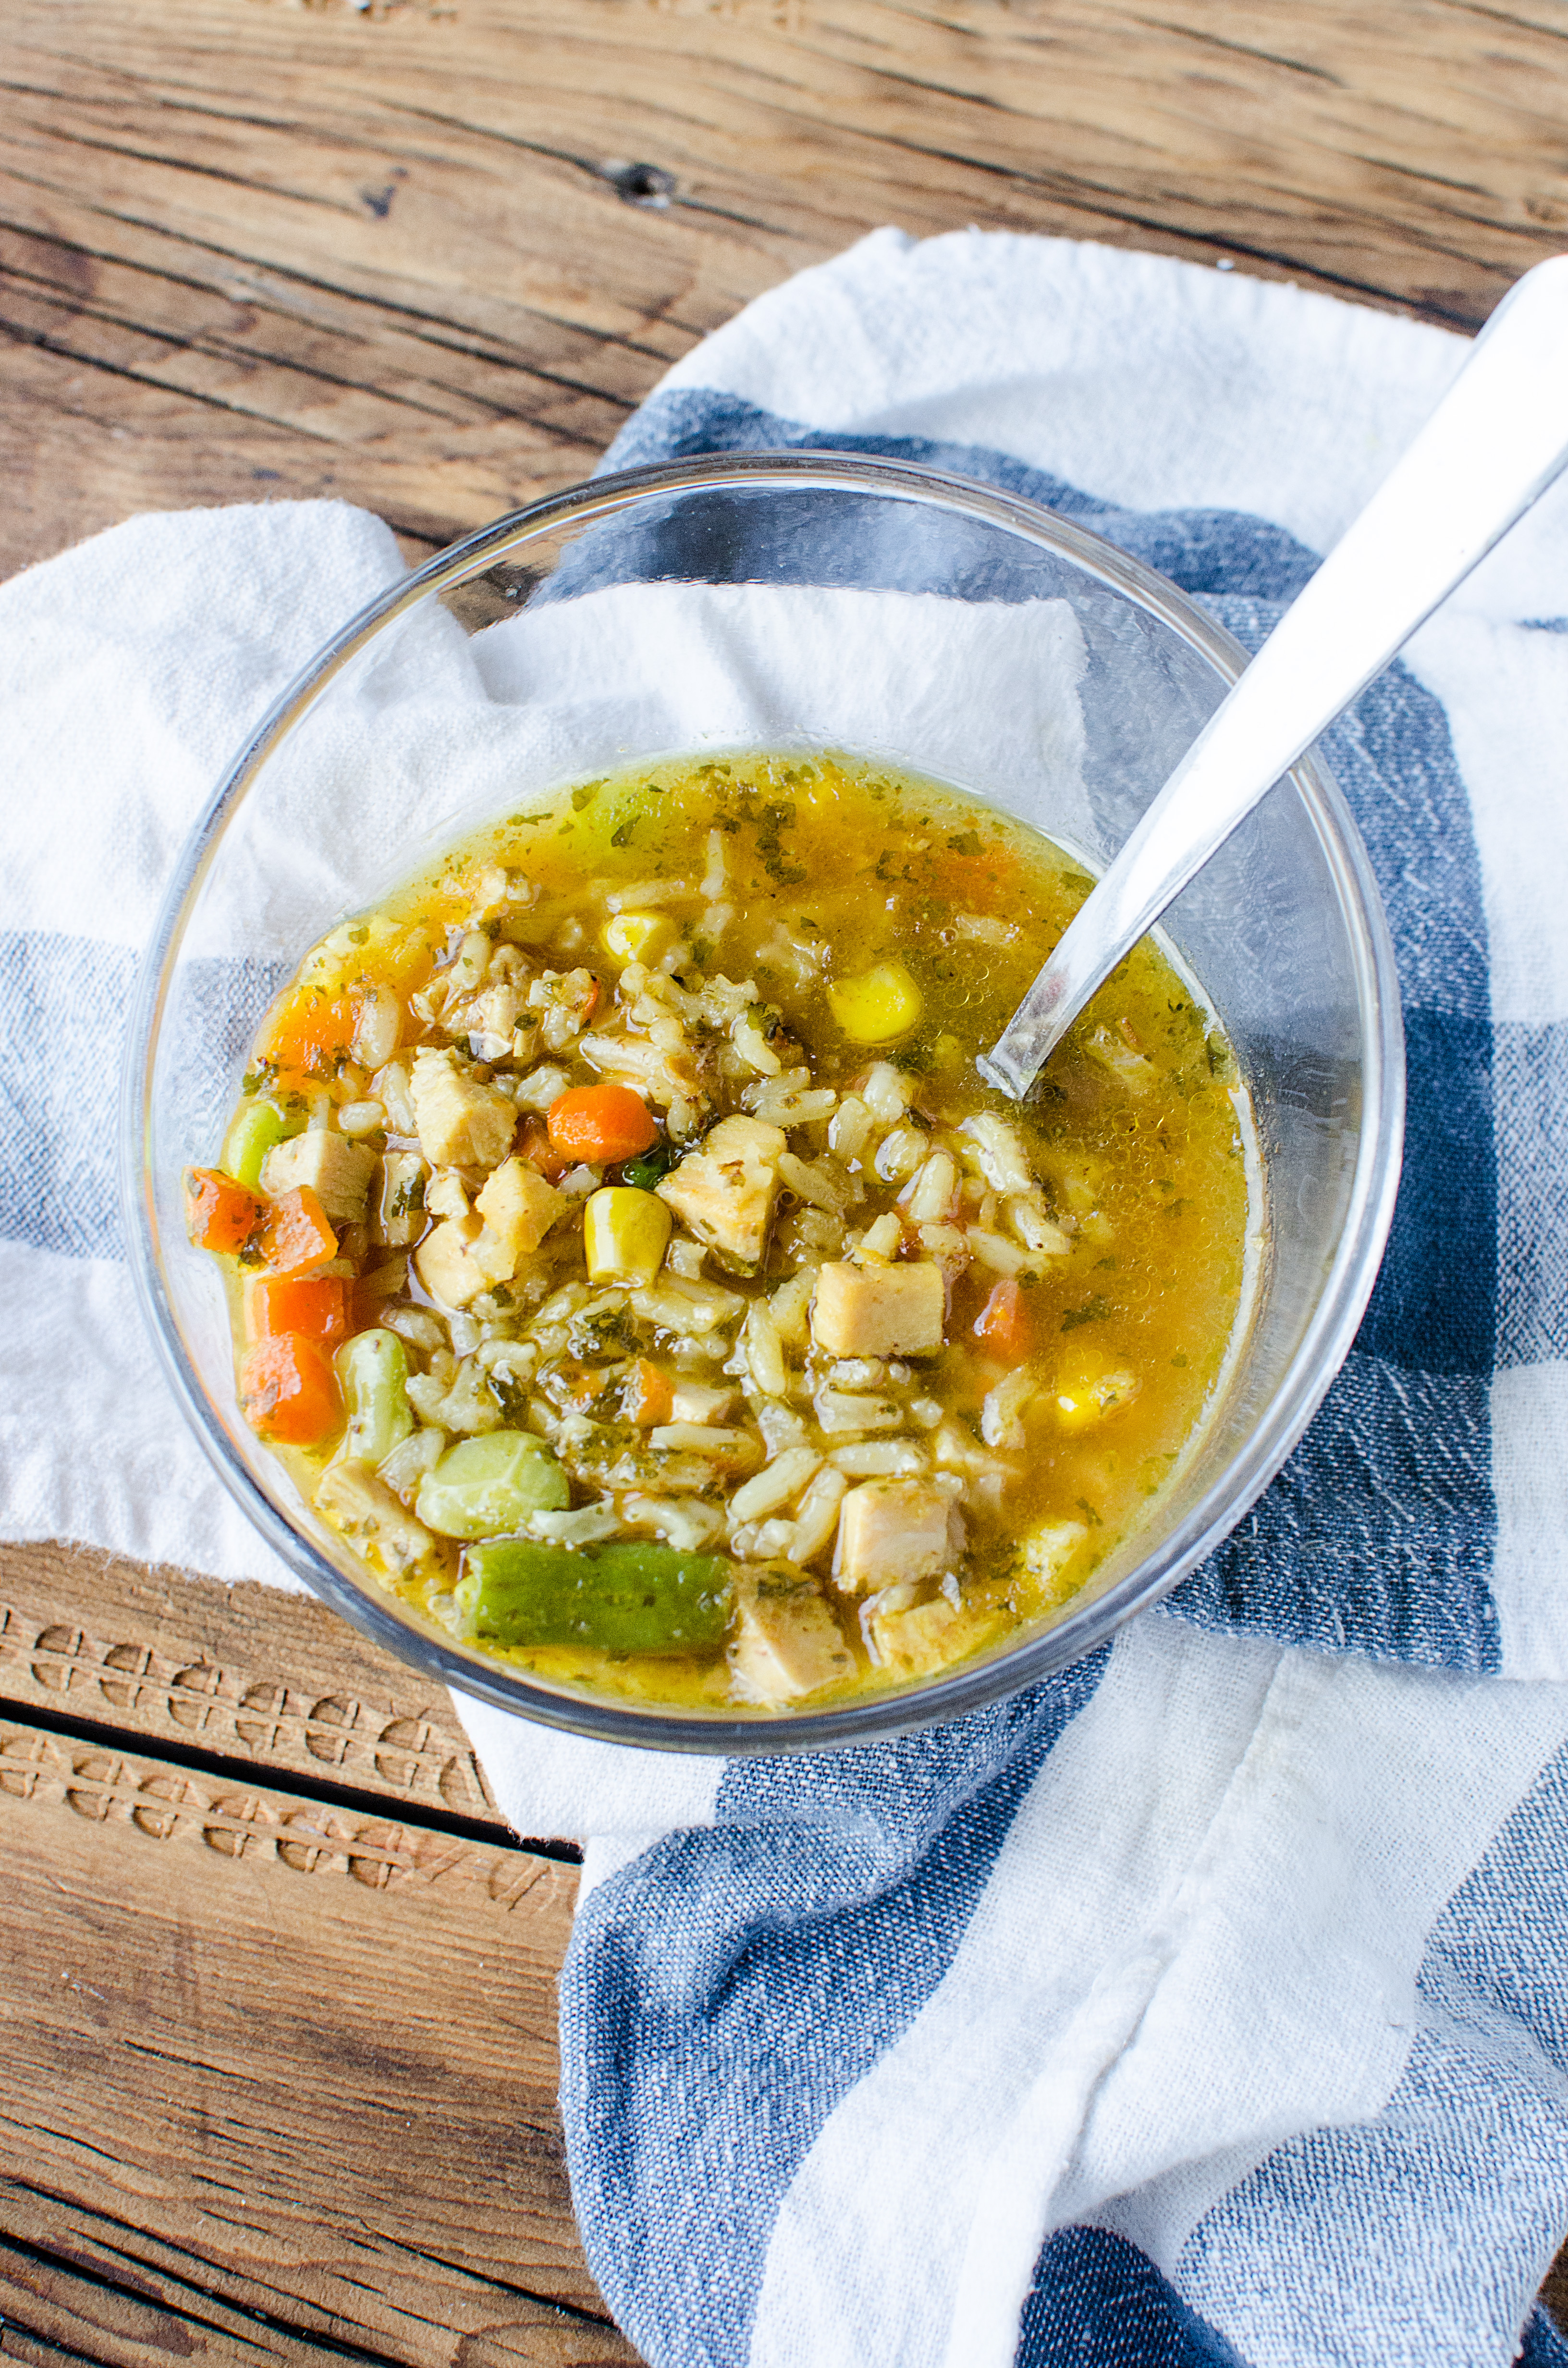 This Curry Turkey and Rice Soup brings a little something different to the table, while giving you that comfort food we so often need.